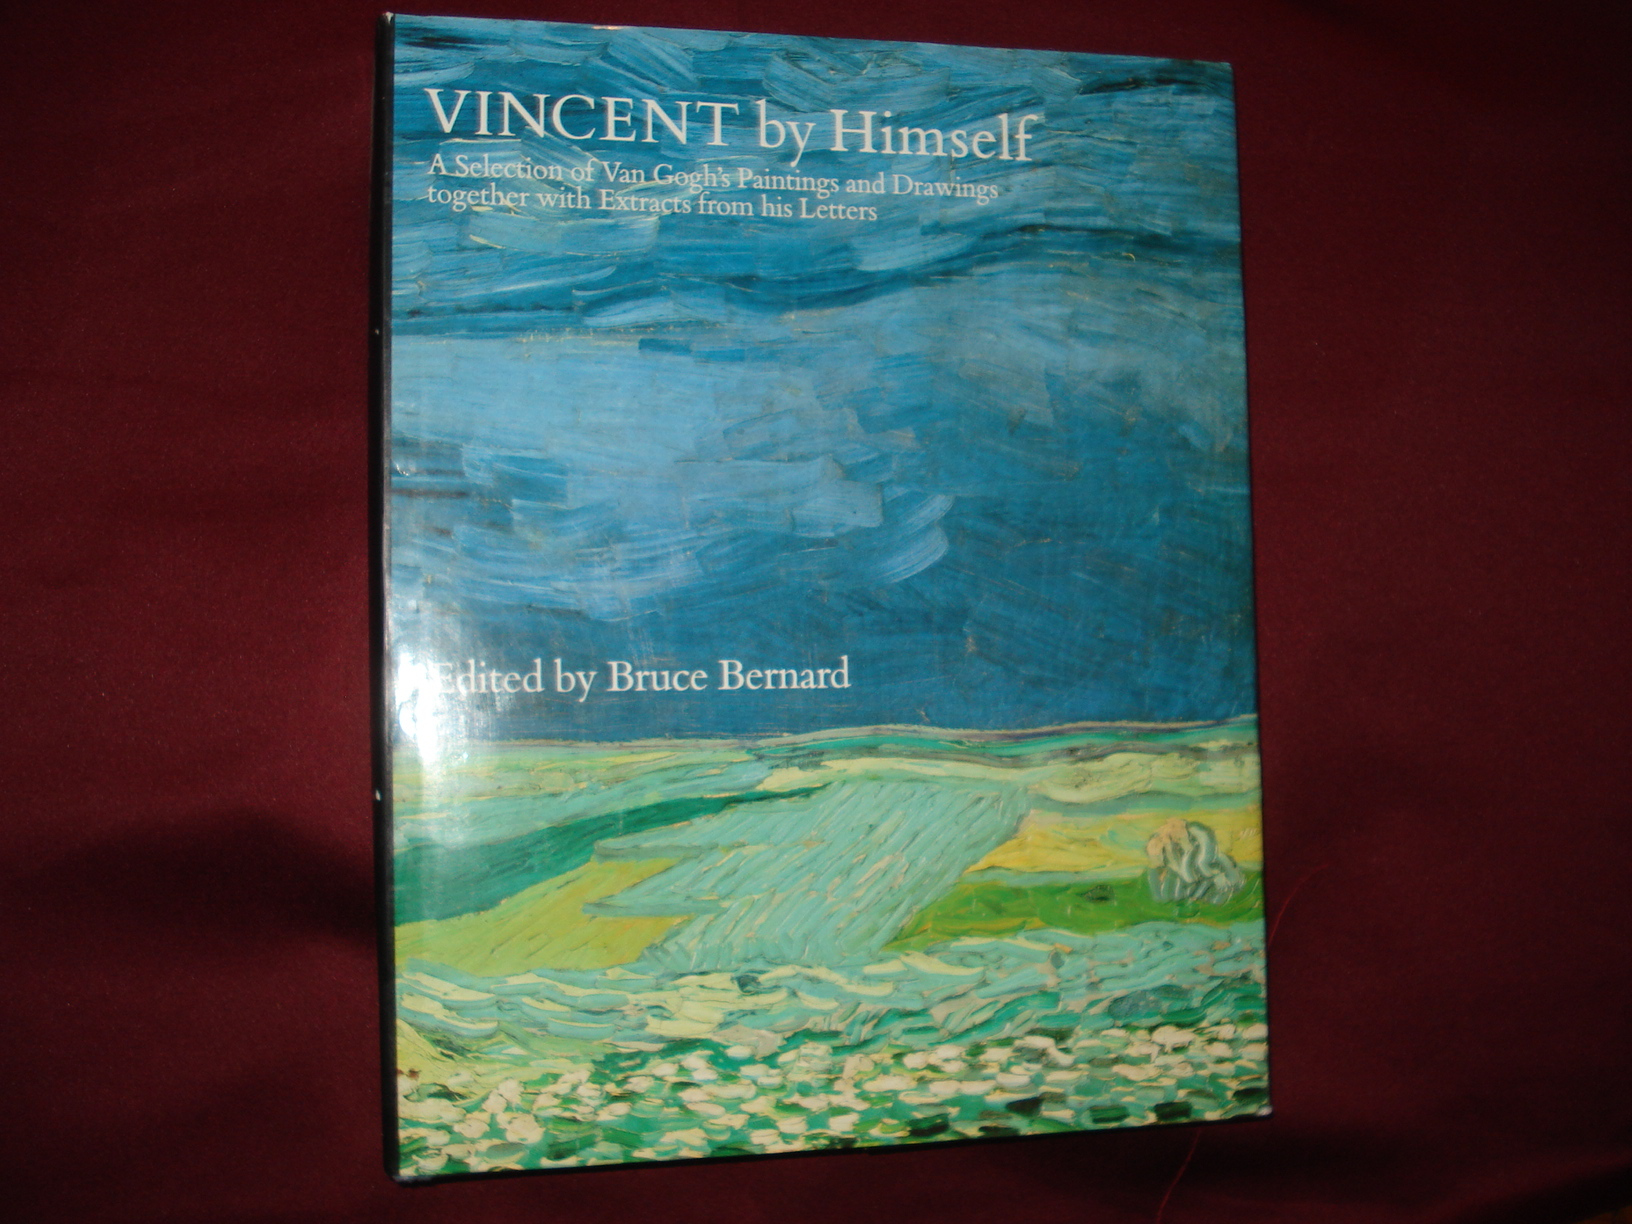 A Selection of Van Goghs Paintings and Drawings Together With Extracts from His Letters Vincent by Himself